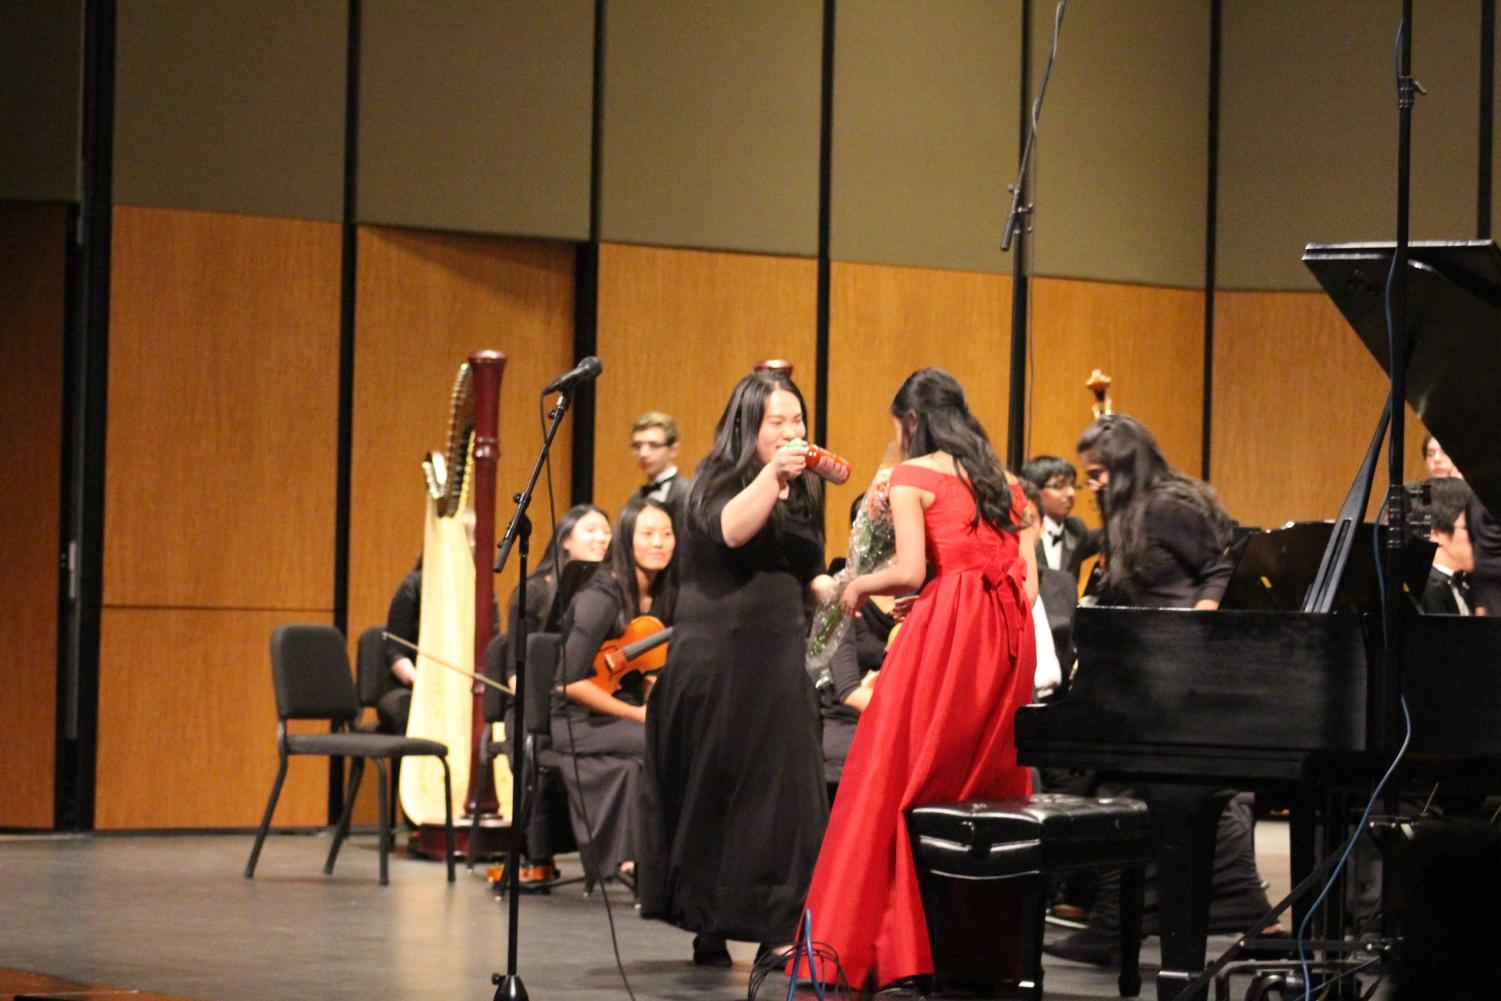 Julie Zhu '19 presents Stephanie Li '19 with a bottle of Sriracha. Li was the senior soloist for the concert.